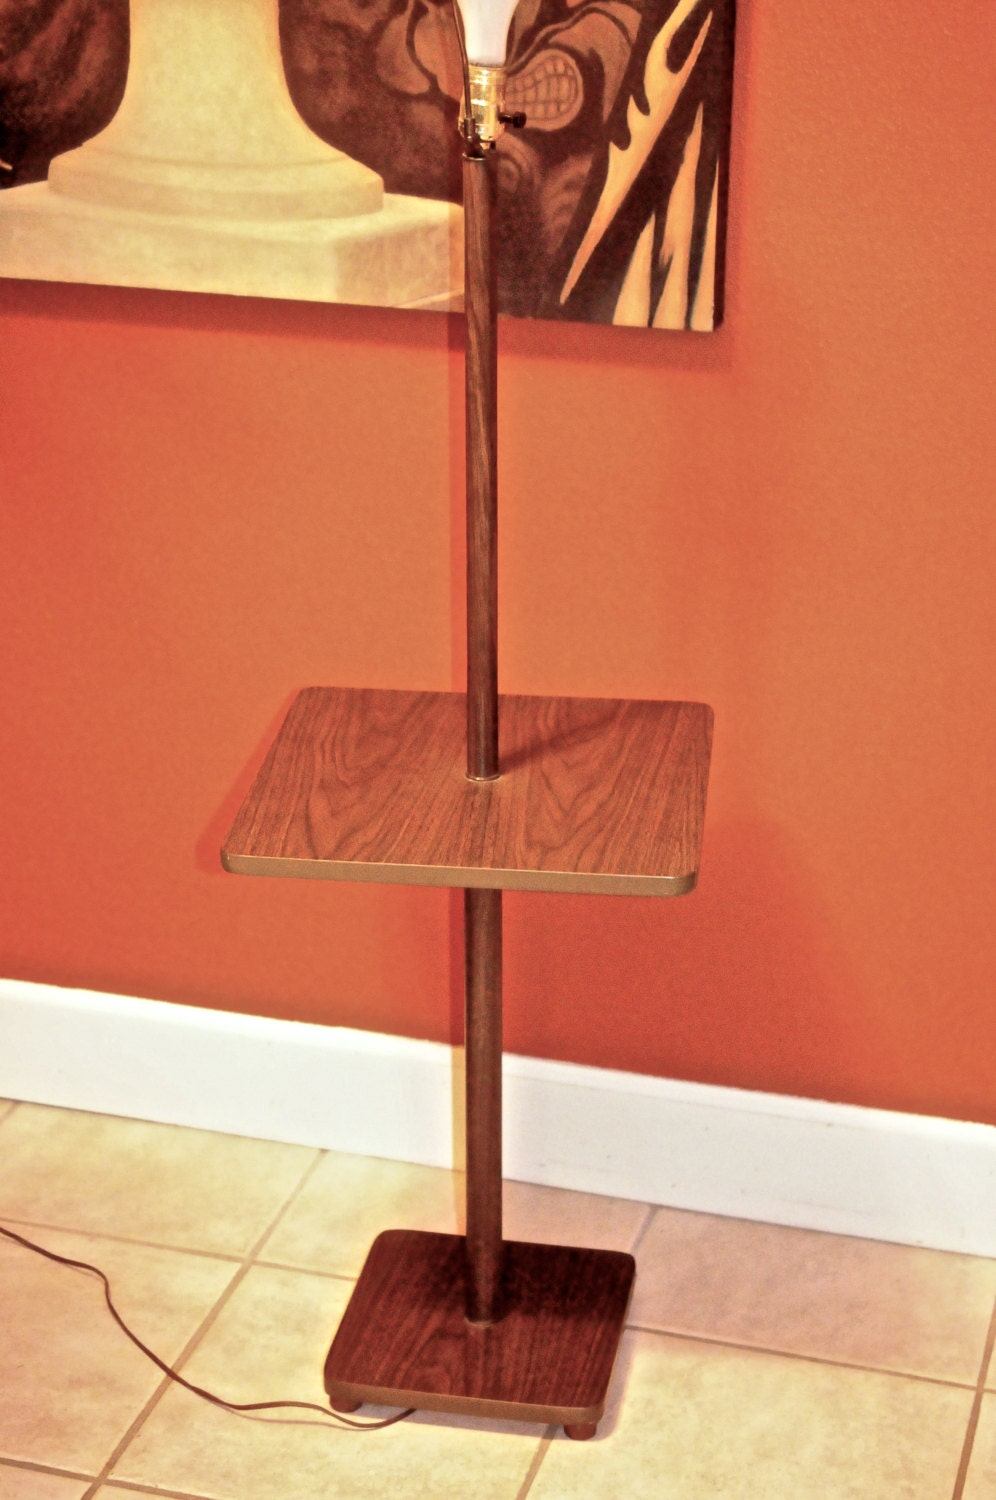 mid century modern pole lamp end table by midcenturymetropolis. Black Bedroom Furniture Sets. Home Design Ideas